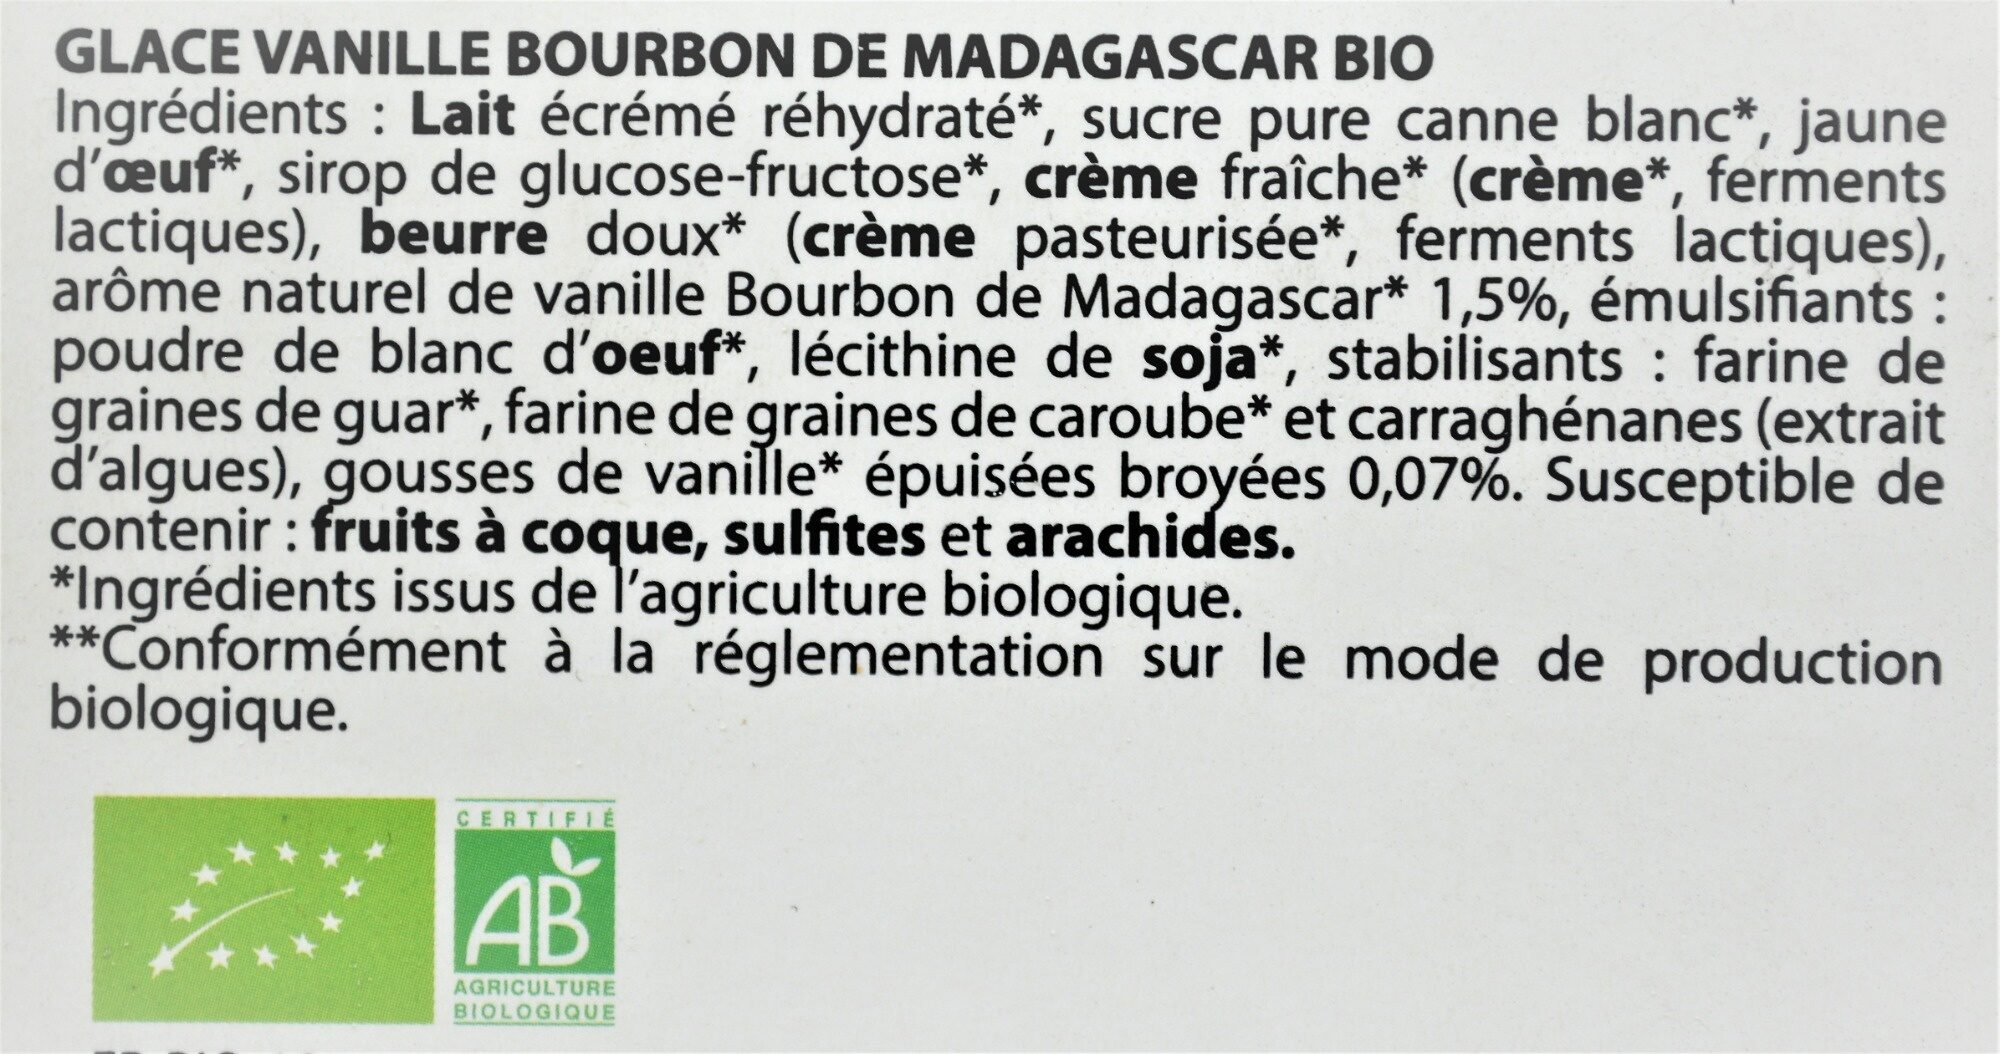 Glace VANILLE BOURBON DE MADAGASCAR BIO - Ingredients